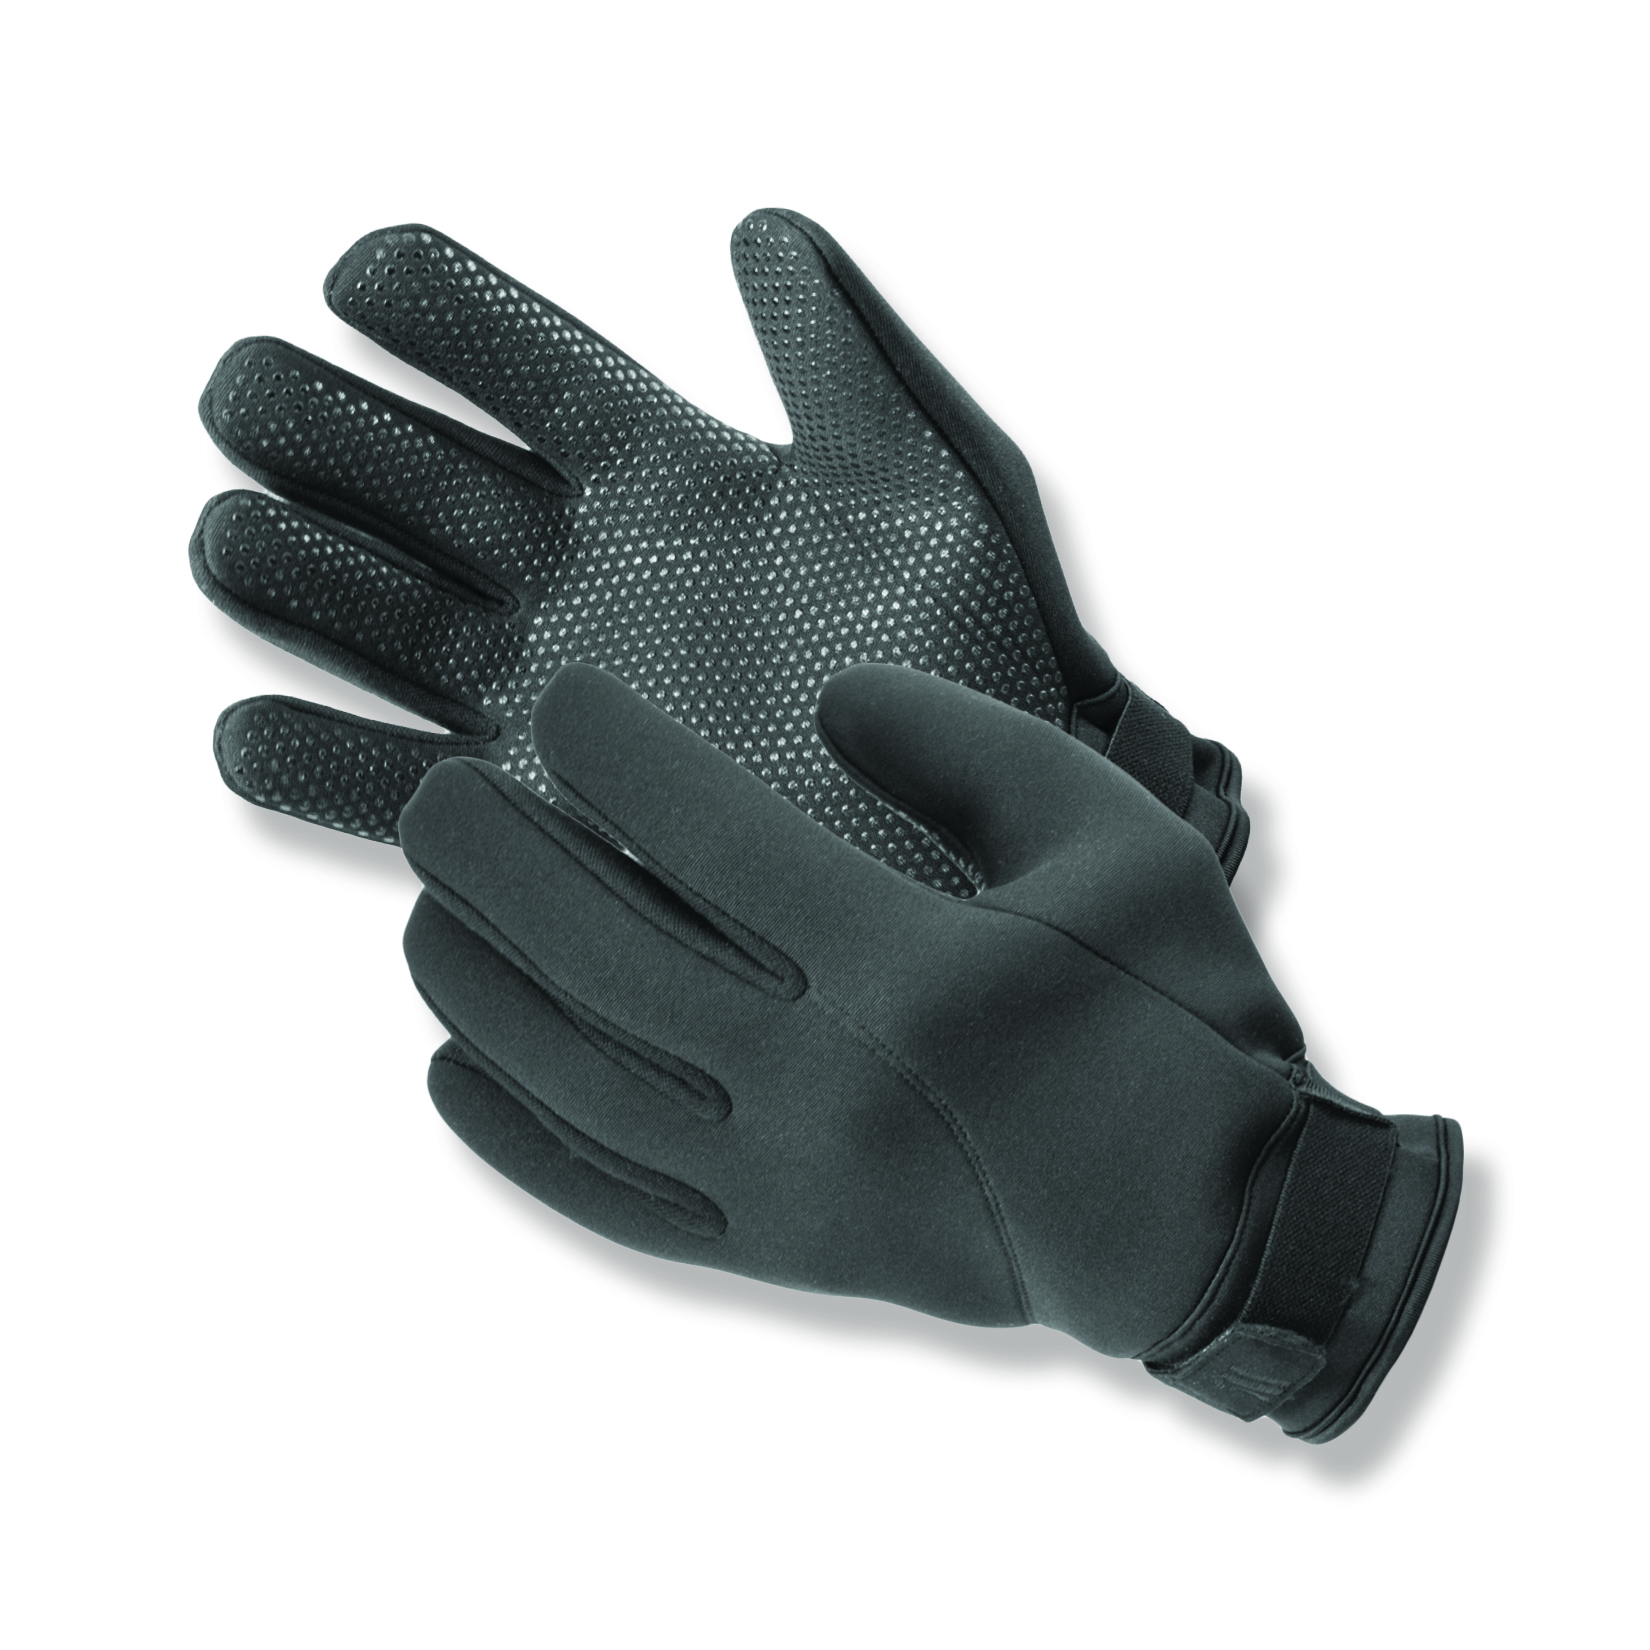 Expert™ Cold Weather Neoprene Uniform Gloves feature gripper dots on the palms